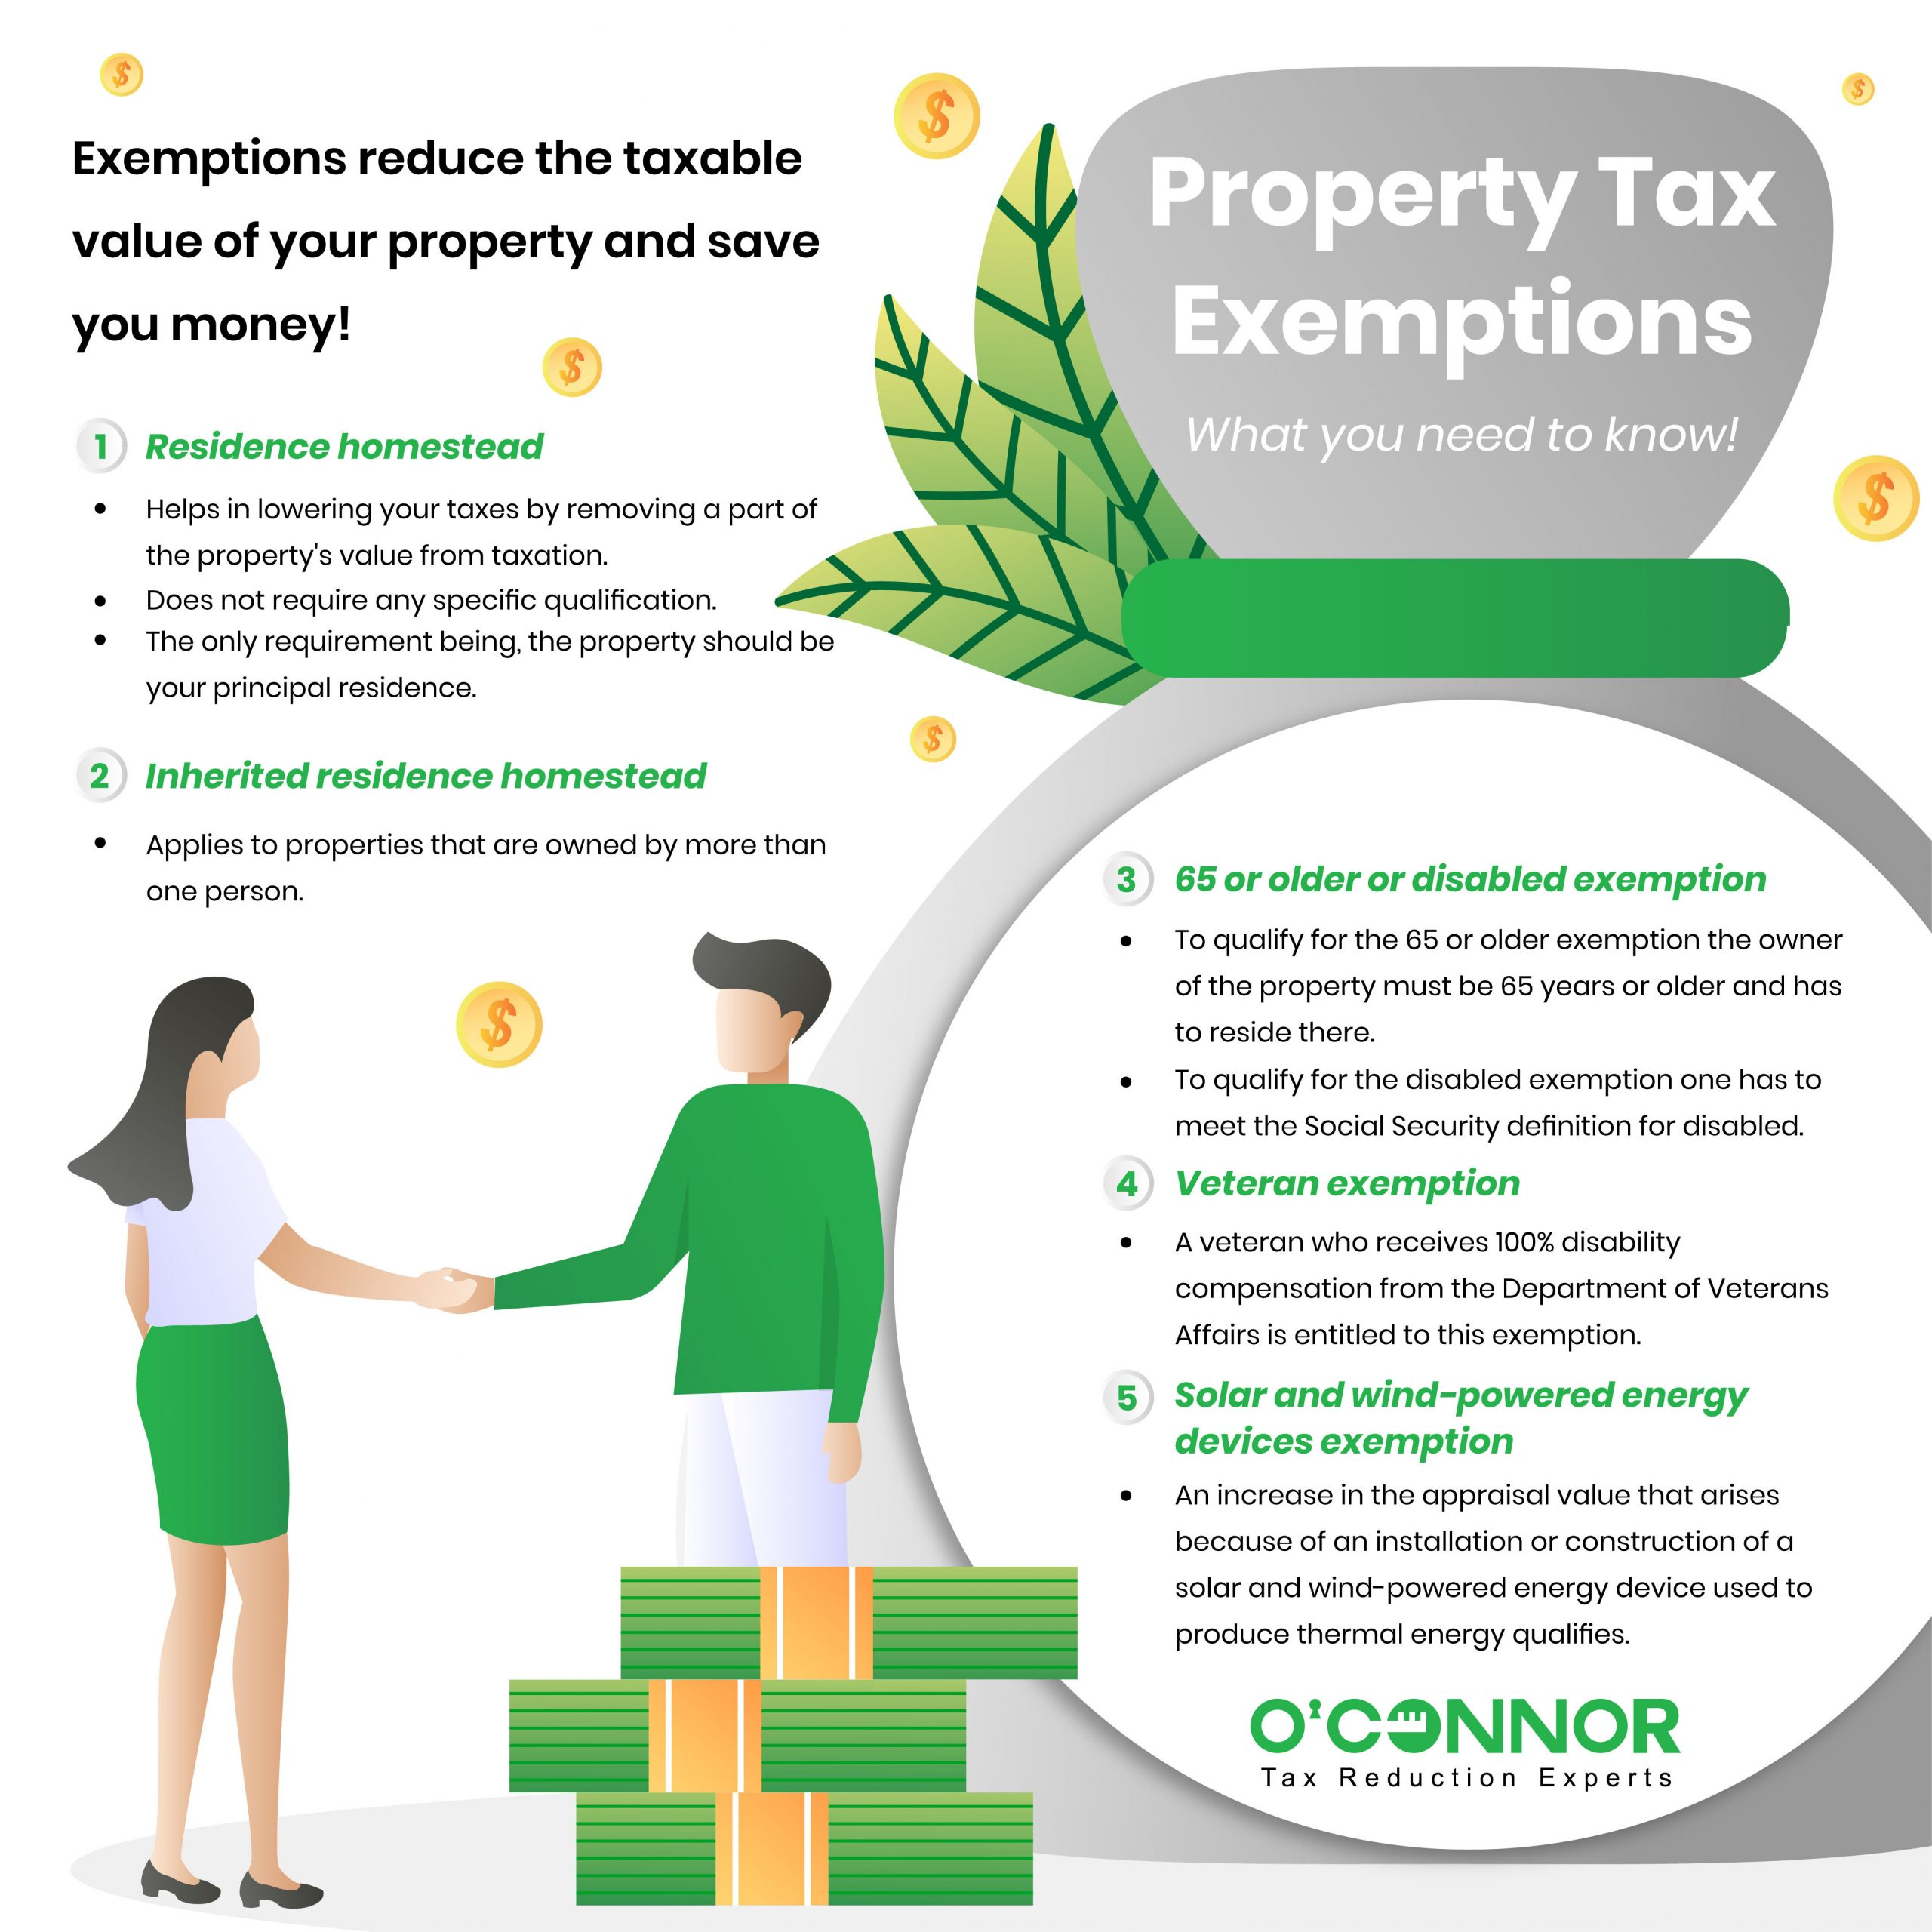 Oconnor- Property Tax Exemptions - What you need to know